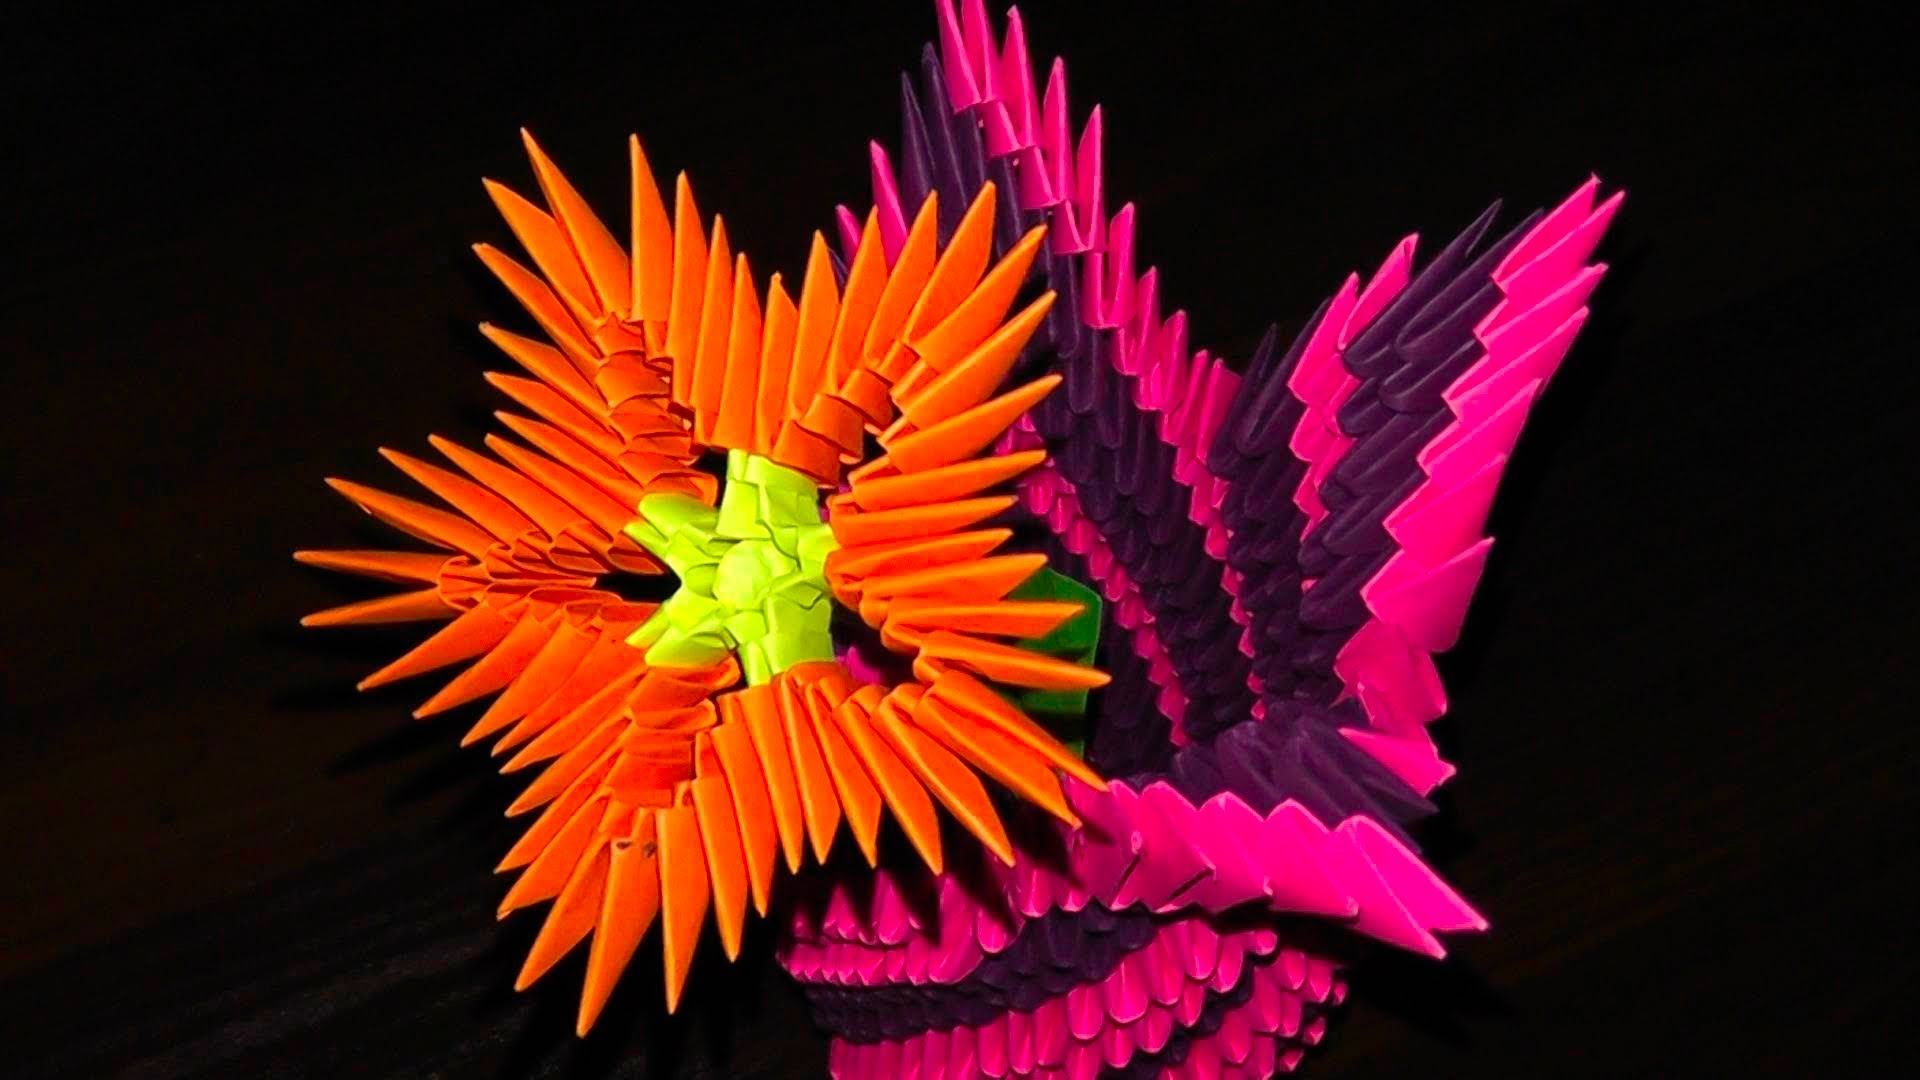 3d Origami Flowers Flower A Master Class For Beginners Origami Blume 3d Origami Origami Kunst